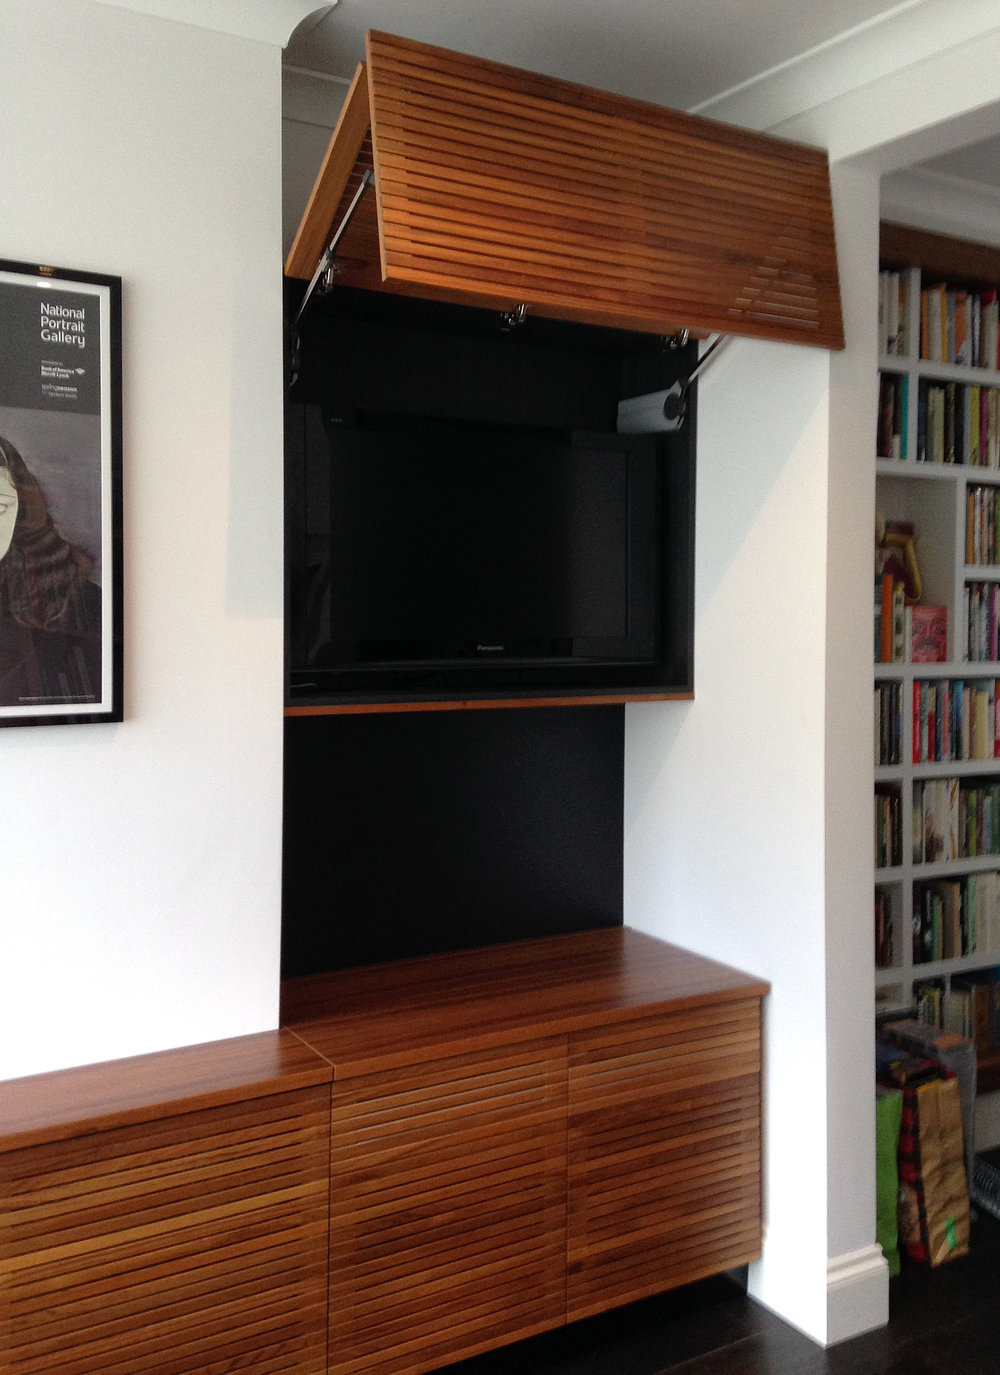 Bespoke buiit-in solid teak TV and turntable console and cabinetry